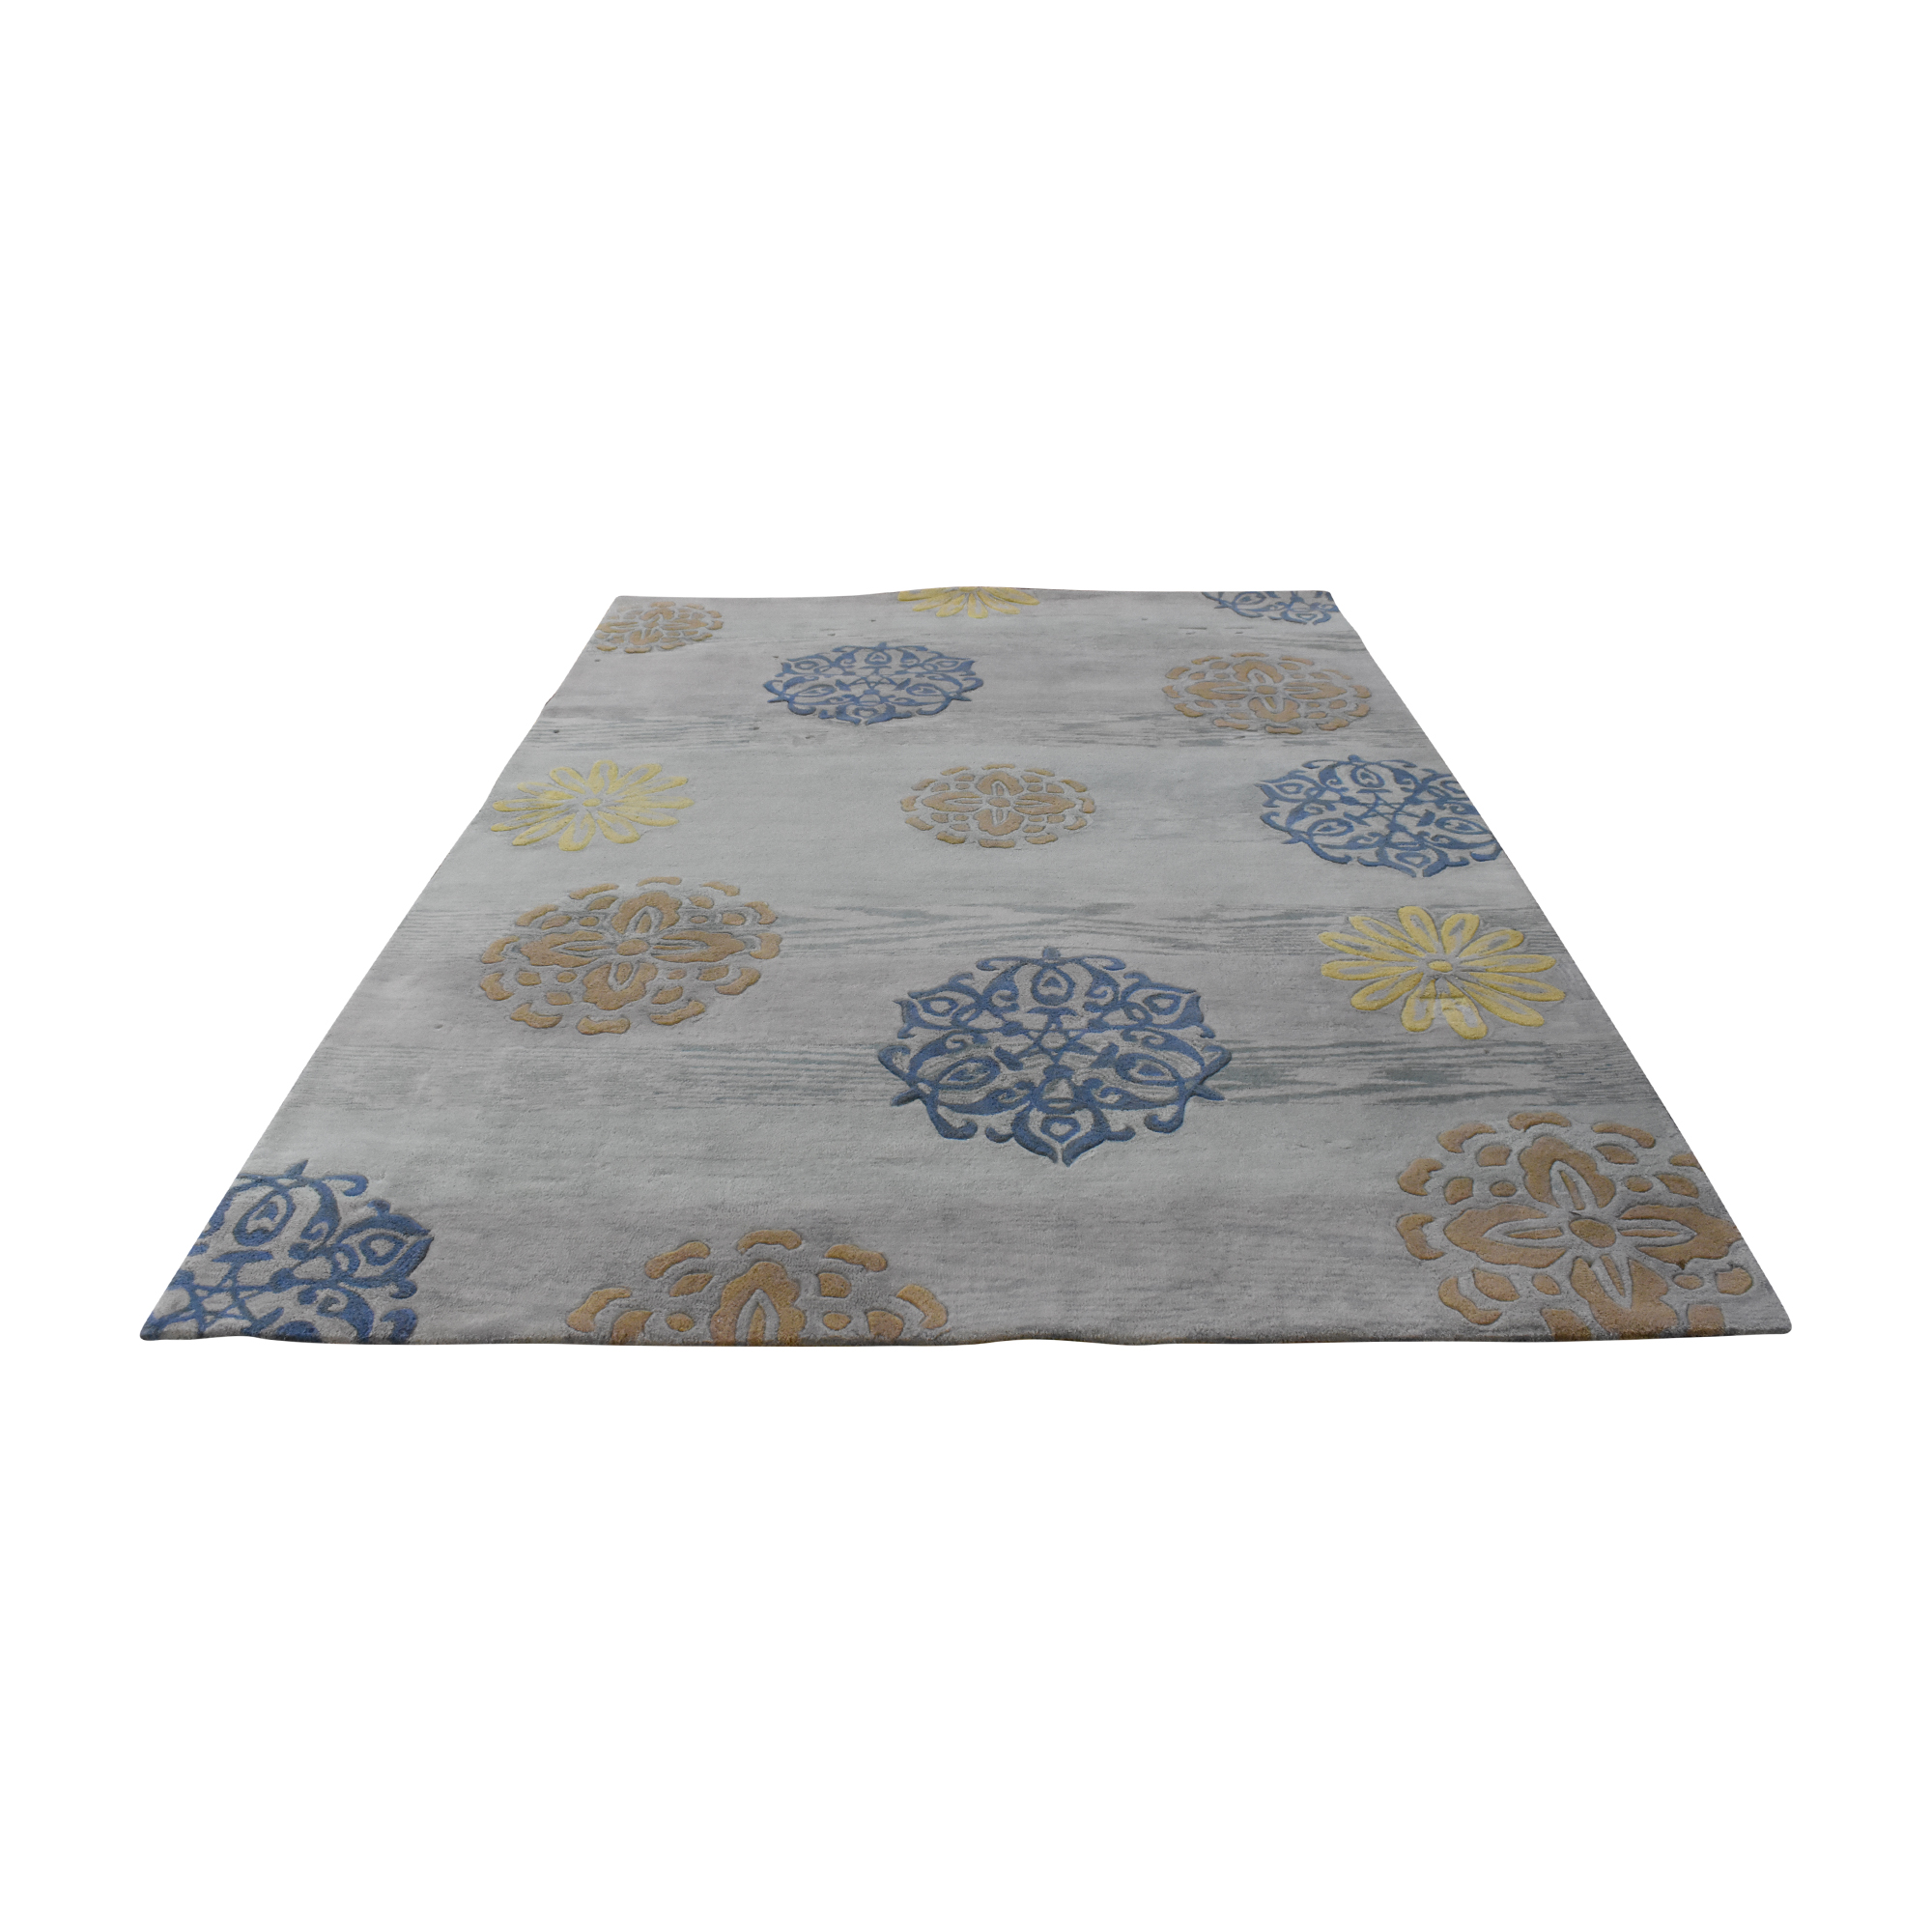 Safavieh Safavieh Rodeo Drive Collection Area Rug coupon